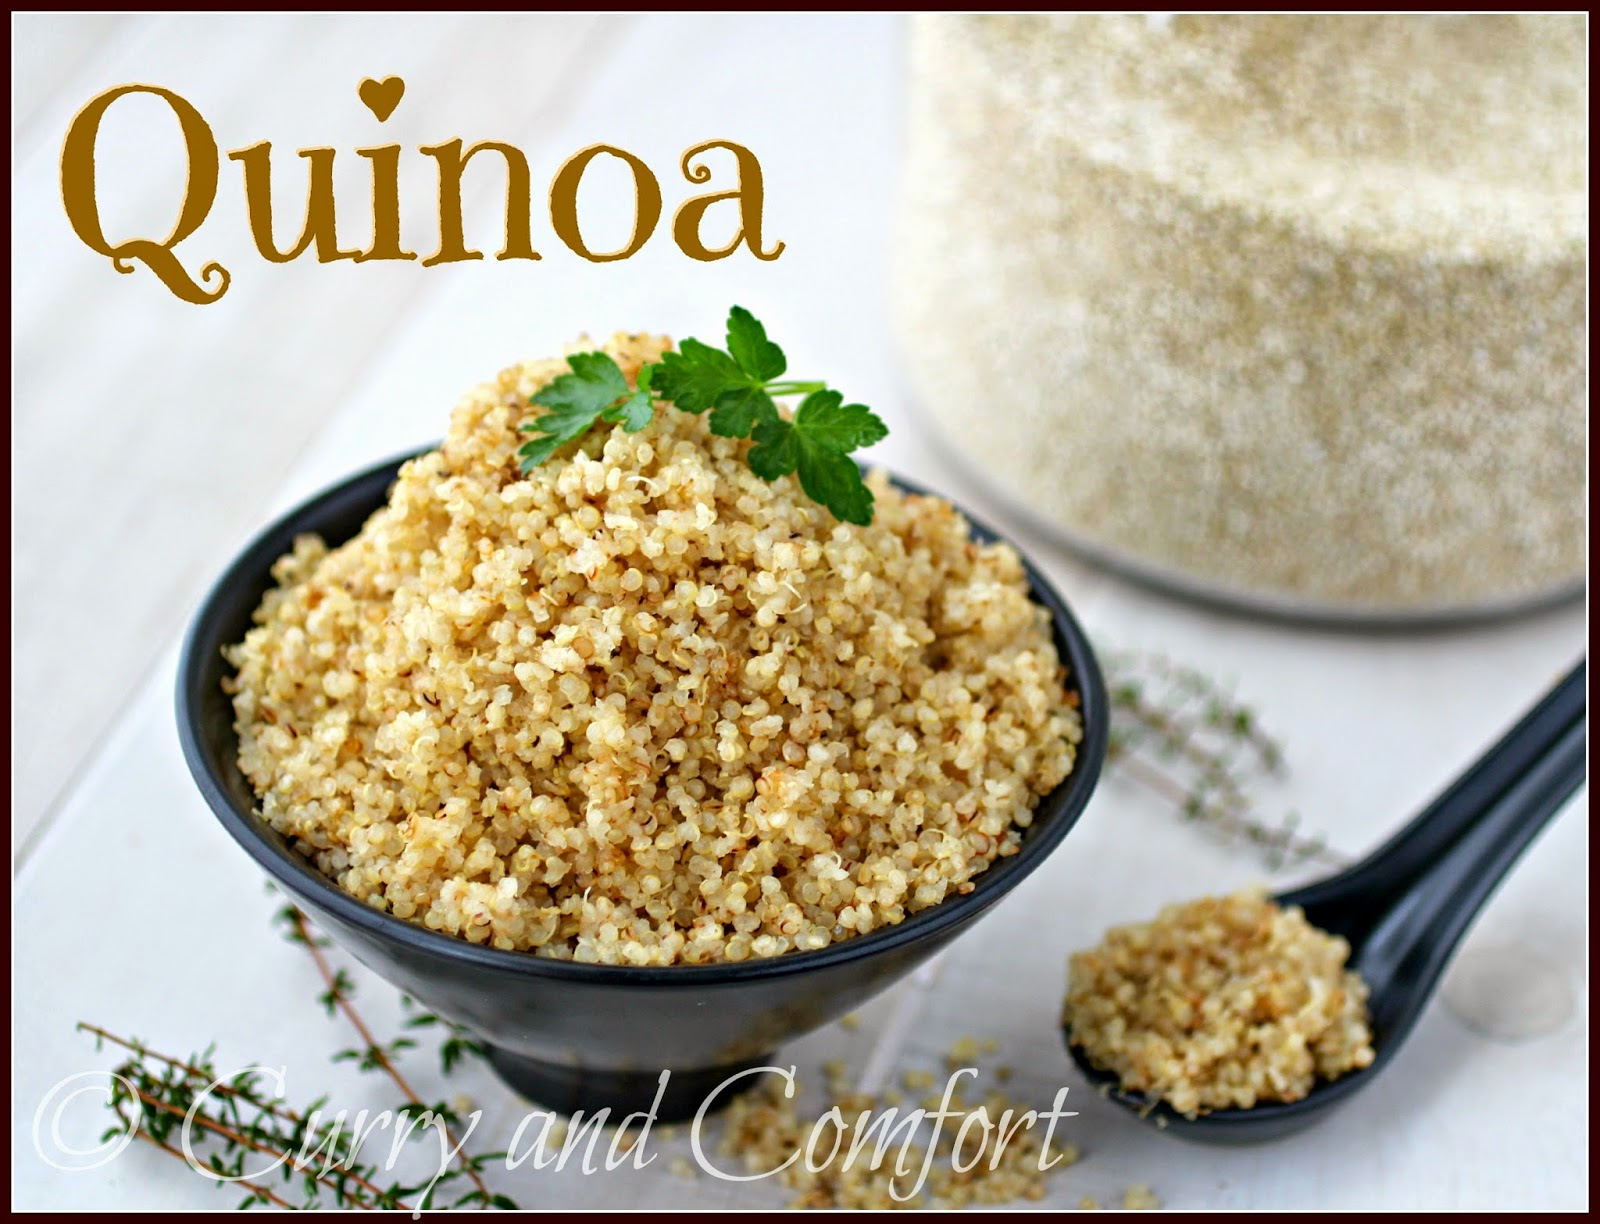 Okay So How Do You Cook Quinoa Perfectly? Here's How  How_to_cook_quinoa_14415_preview